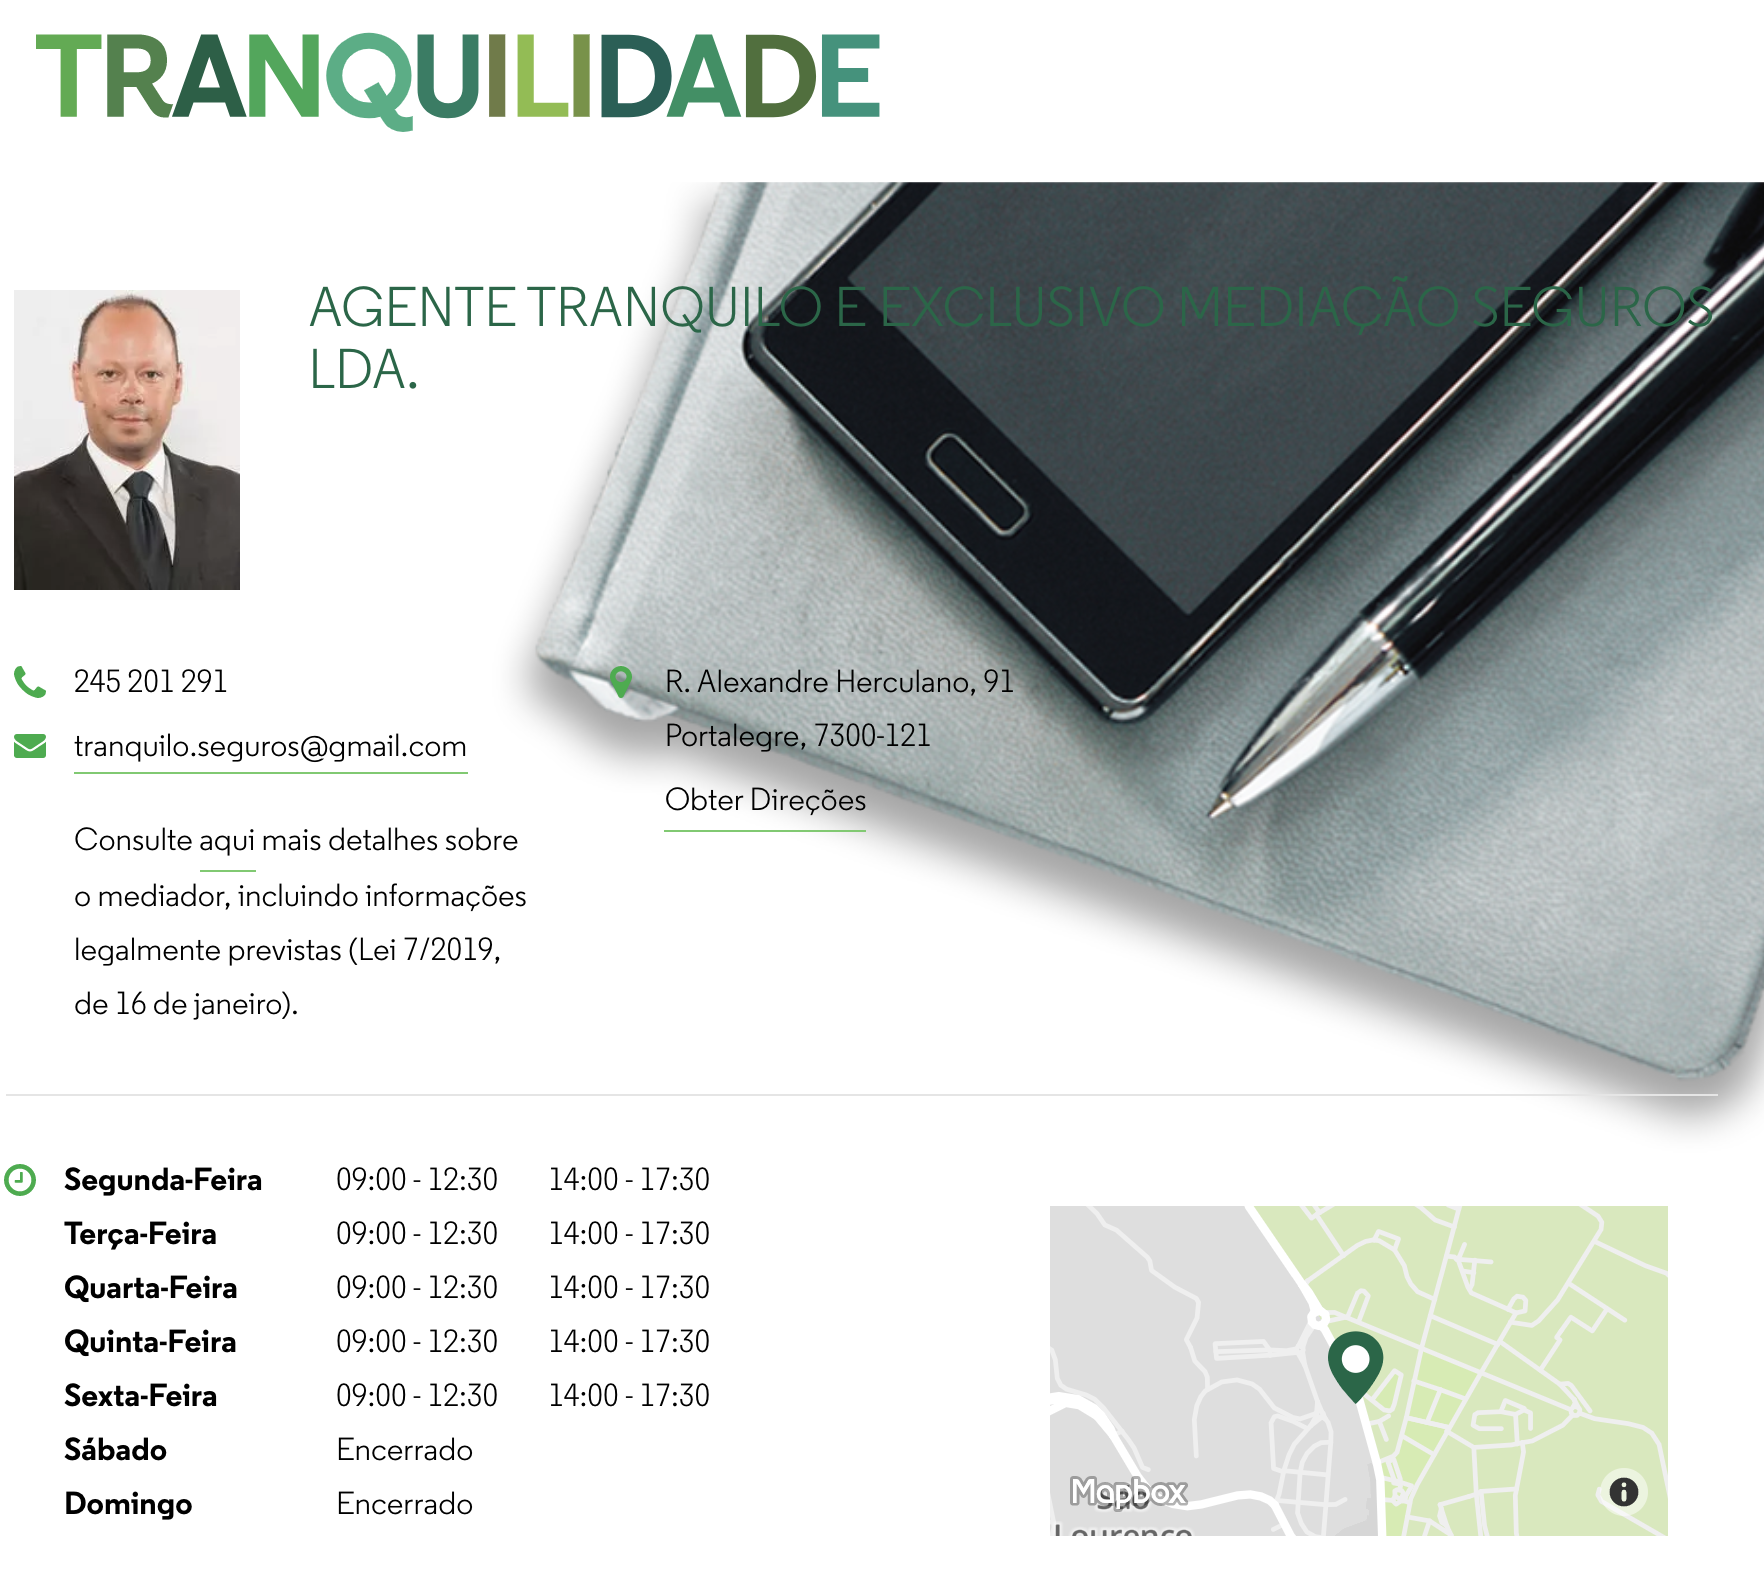 Tranquilidade Agent Page